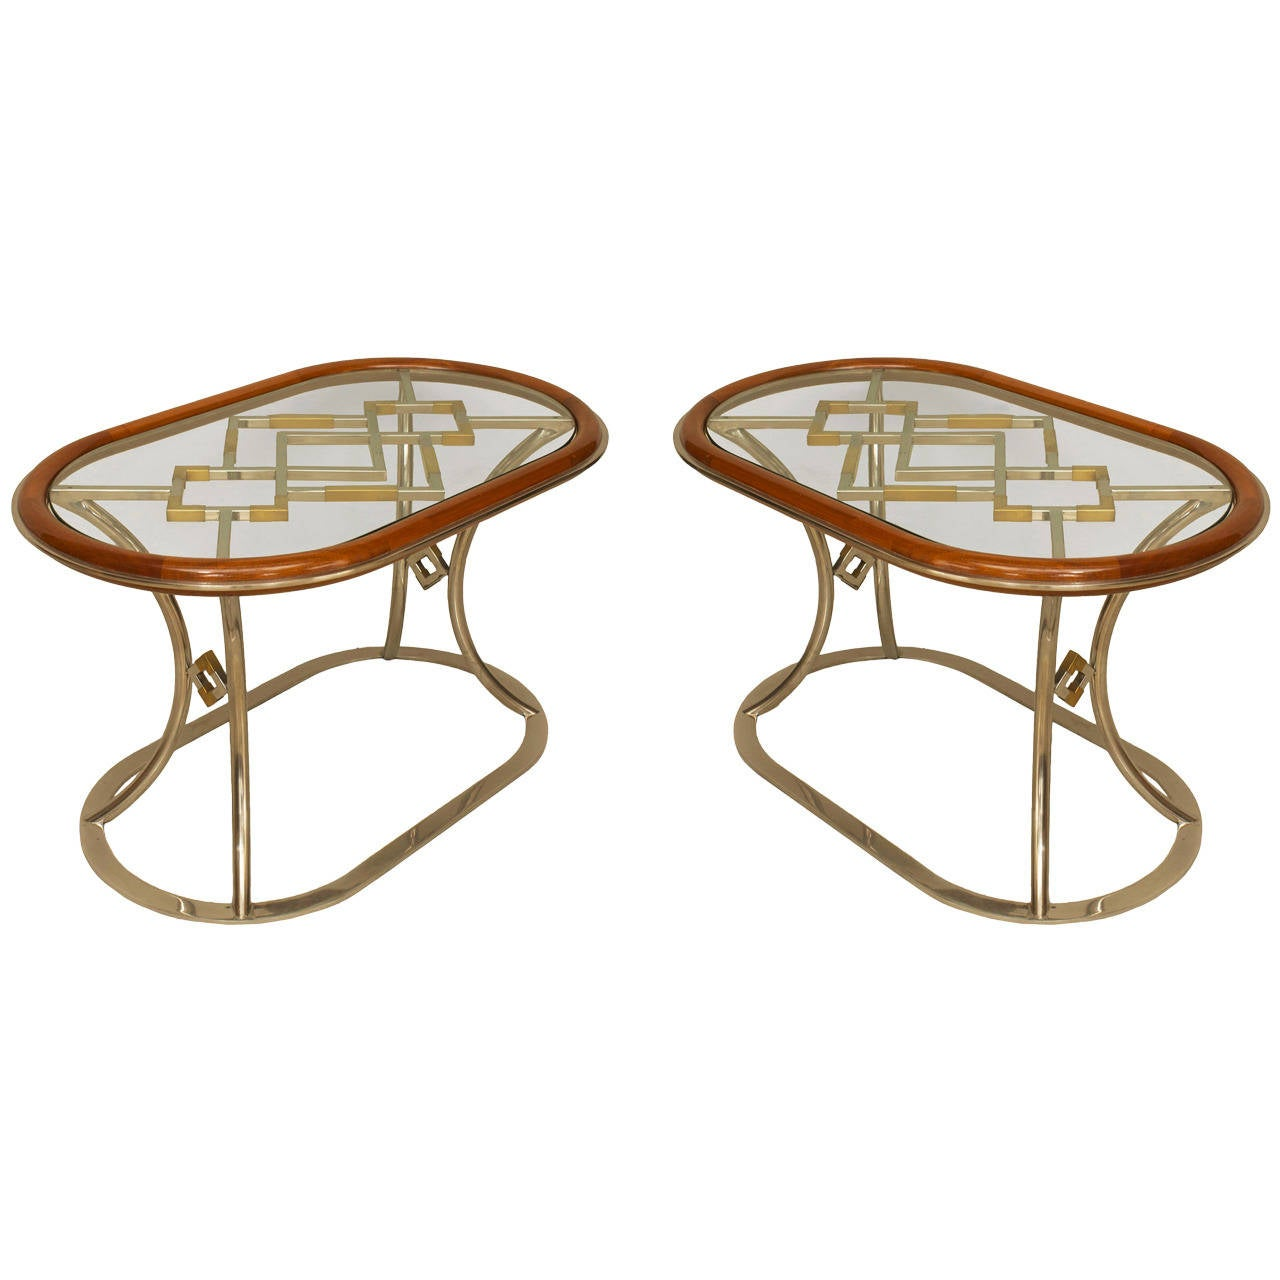 Pair of Fabulous Brass Oval Coffee Tables by Alain Delon for Maison Jansen